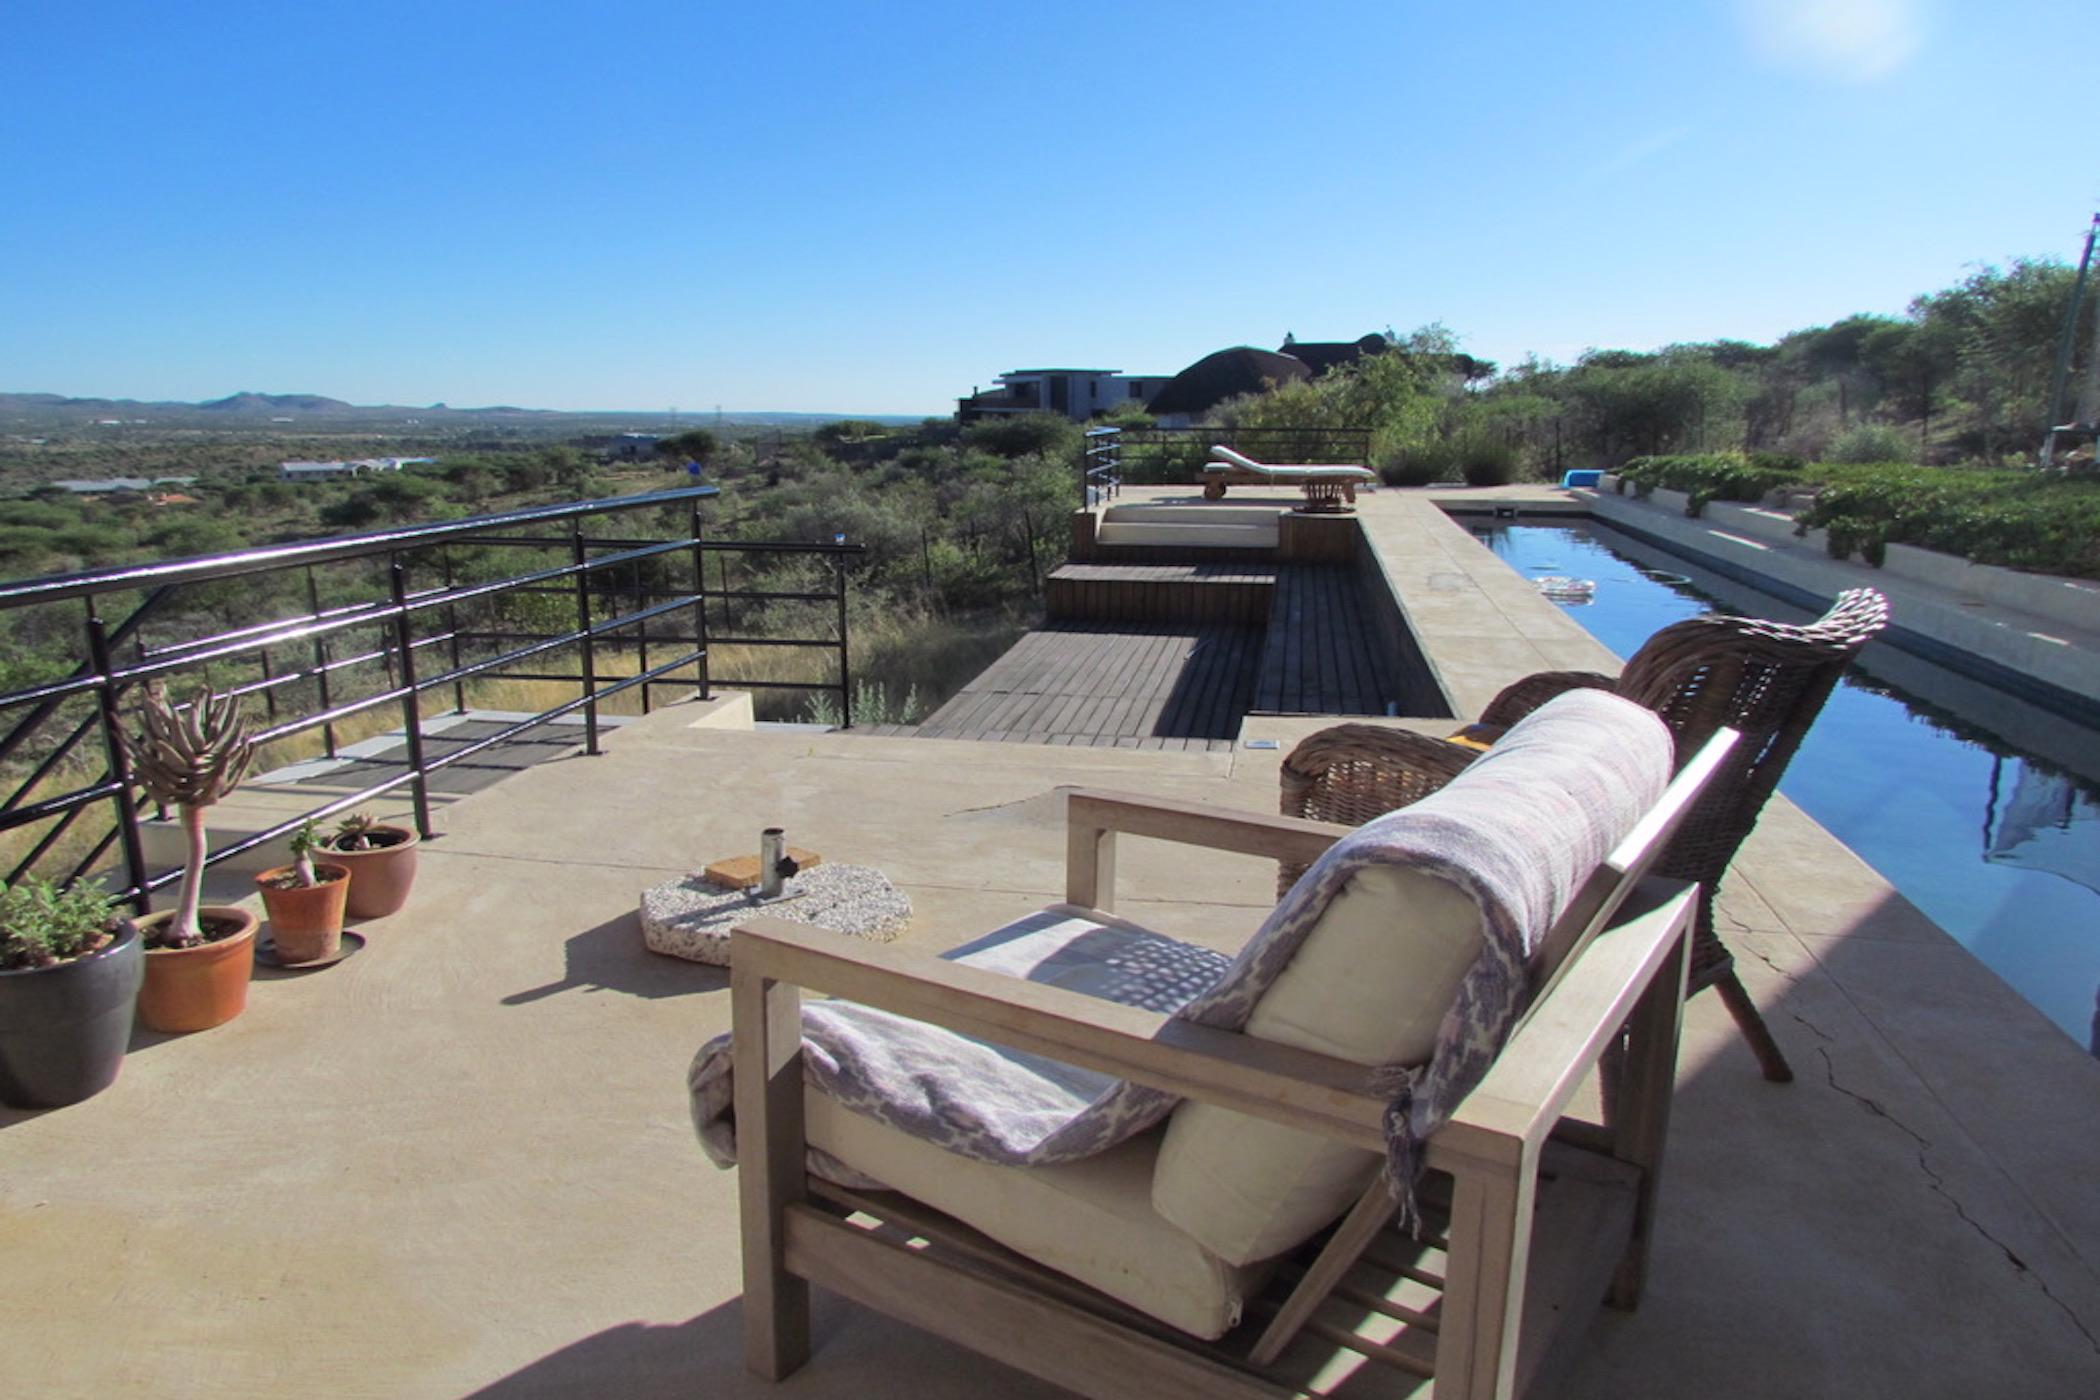 https://listing.pamgolding.co.za/images/properties/201902/1272609/H/1272609_H_23.jpg